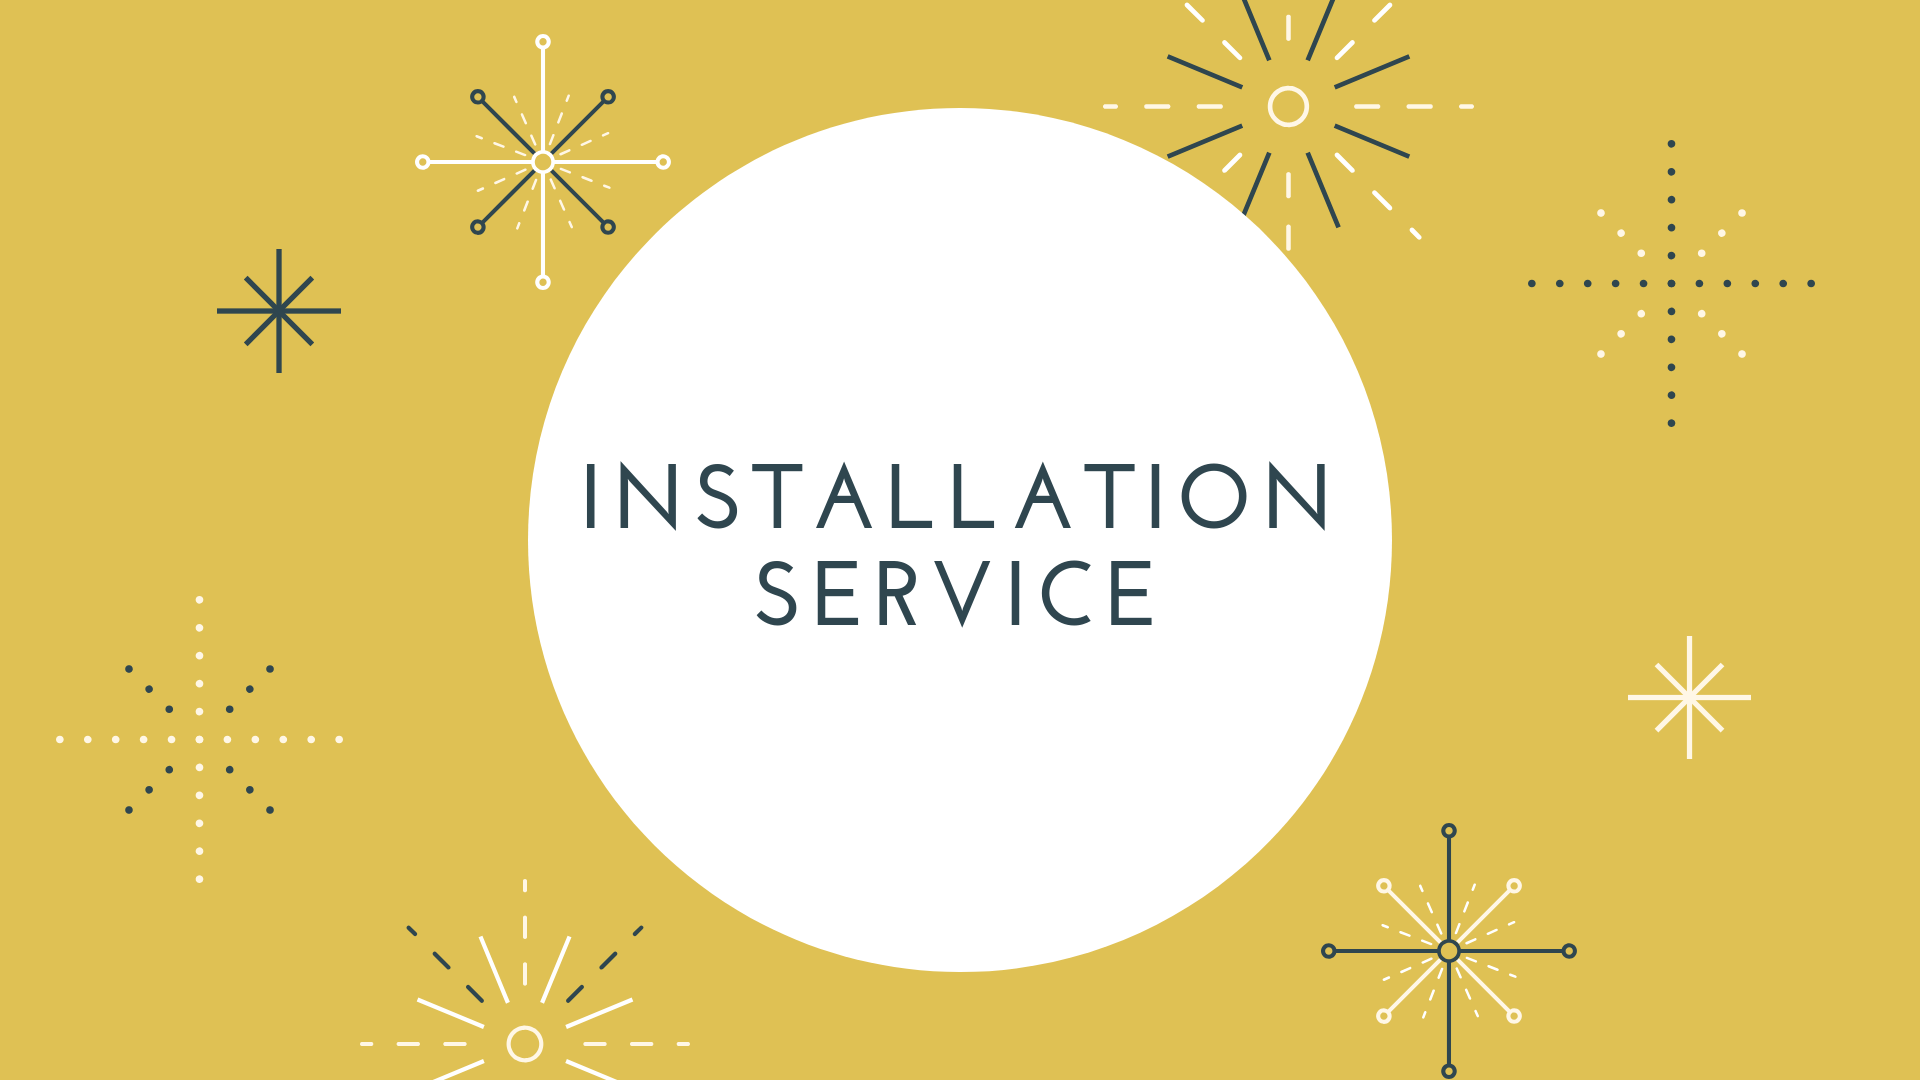 1.27.19 Installation service (1).png